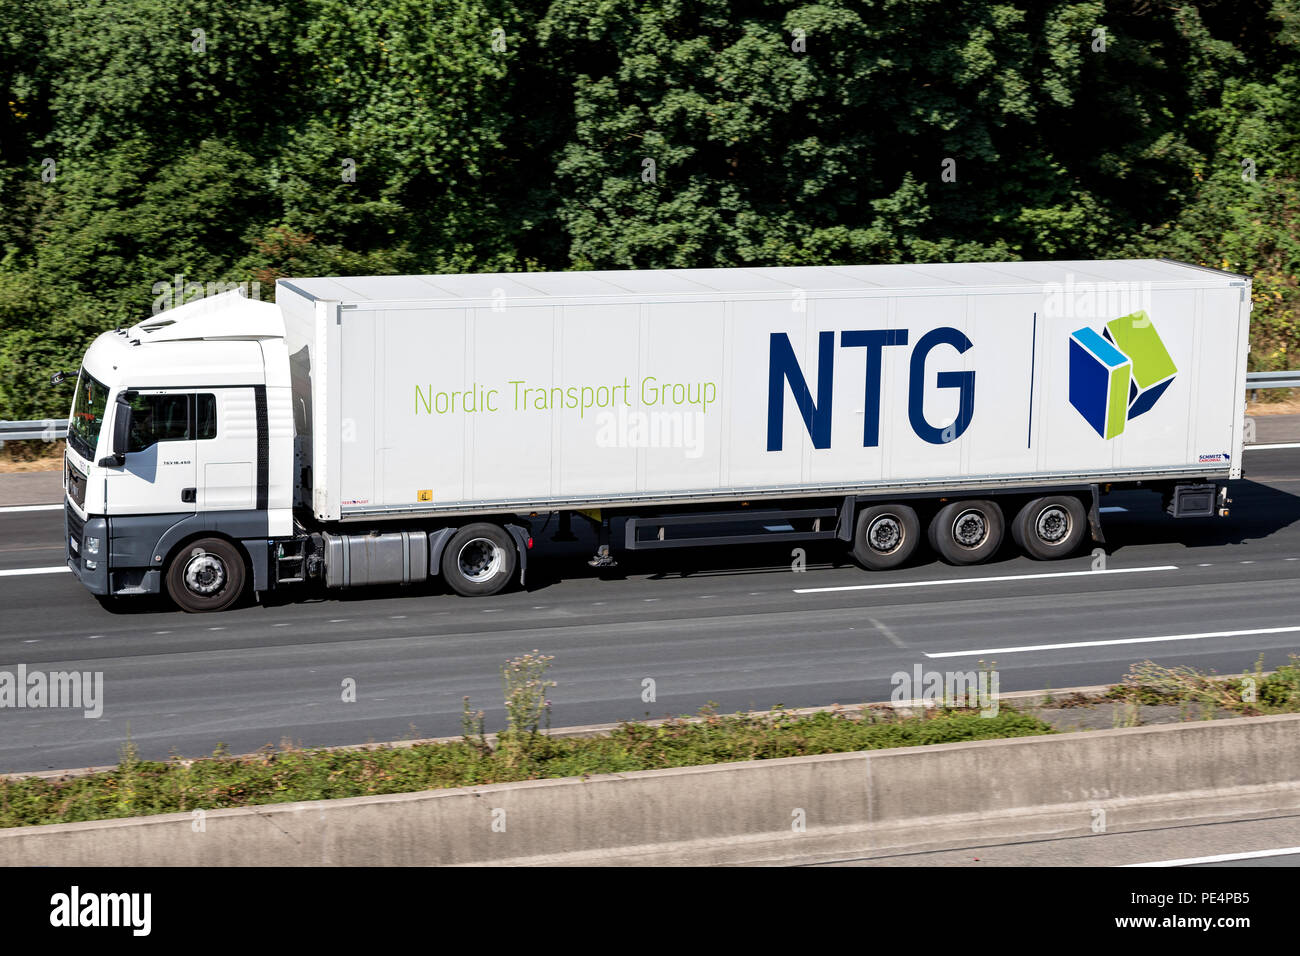 NTG truck on motorway.  NTG Group is a Danish logistics company with 2,000 vehicle units and 150,000 m² of warehouse surface.d - Stock Image